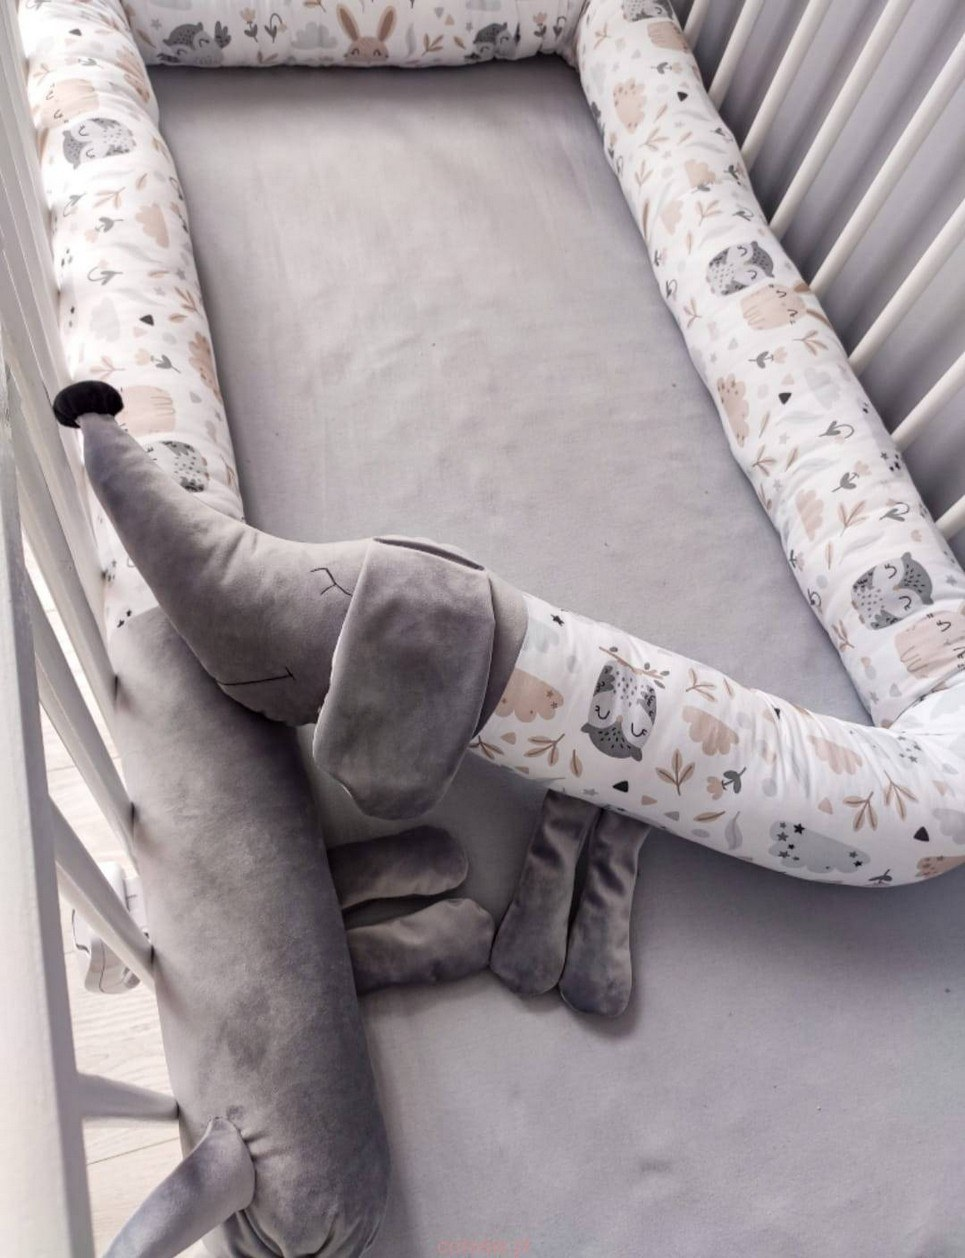 Dachshund With Owls and Bunnies Cot Bumper